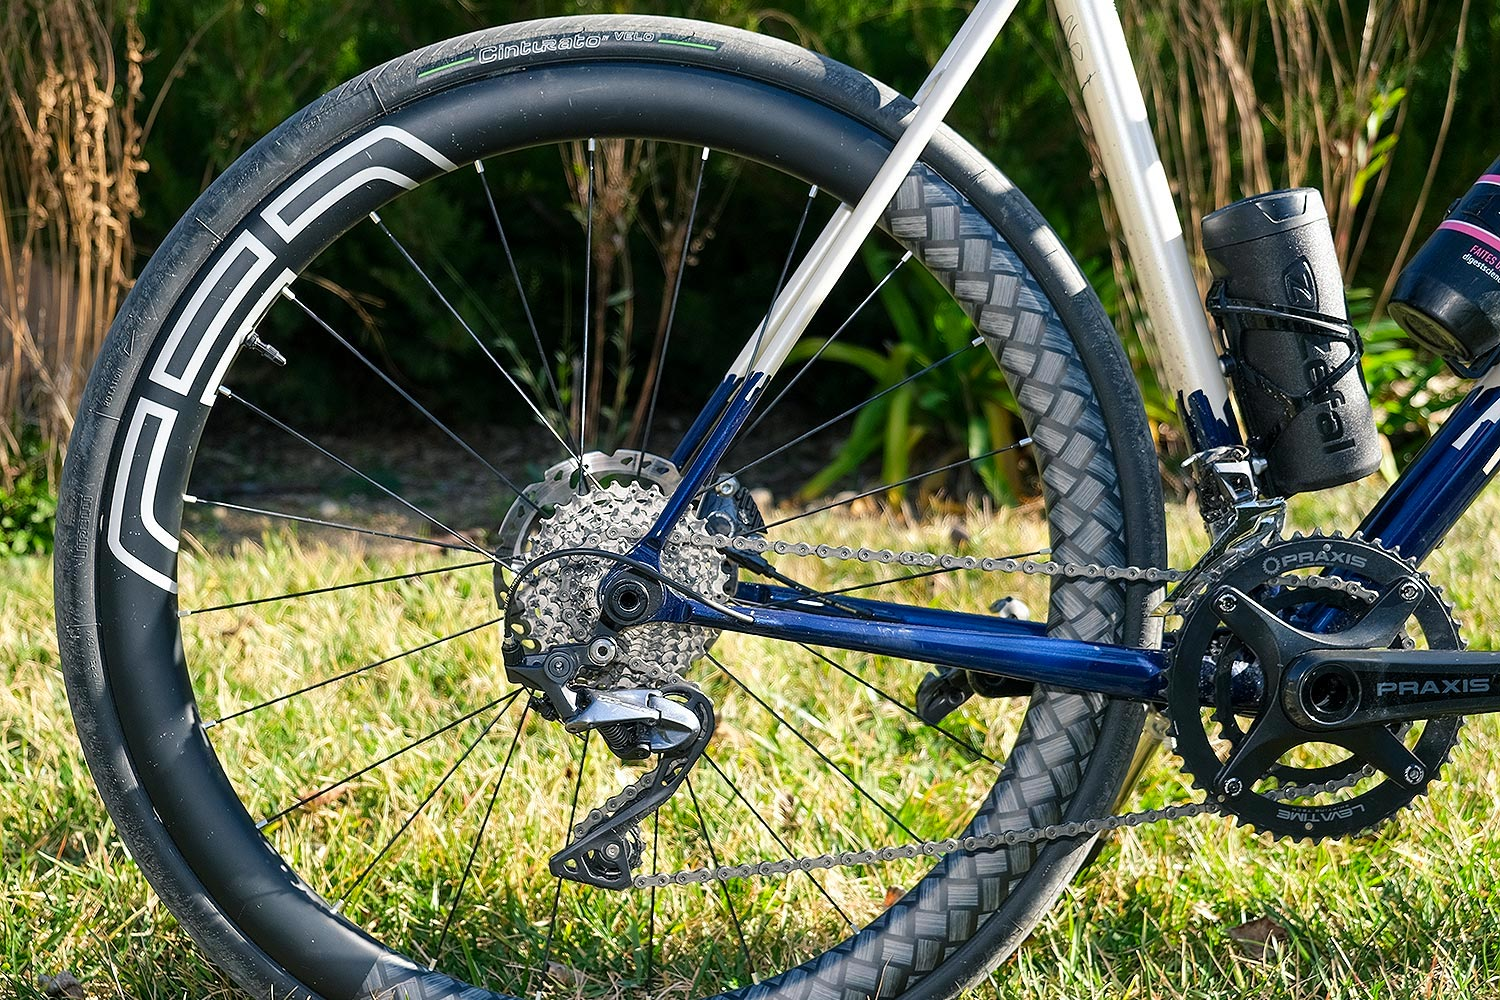 Carbon Endurance Component CEC roues Carbone/innegra - photo Philippe Aillaud